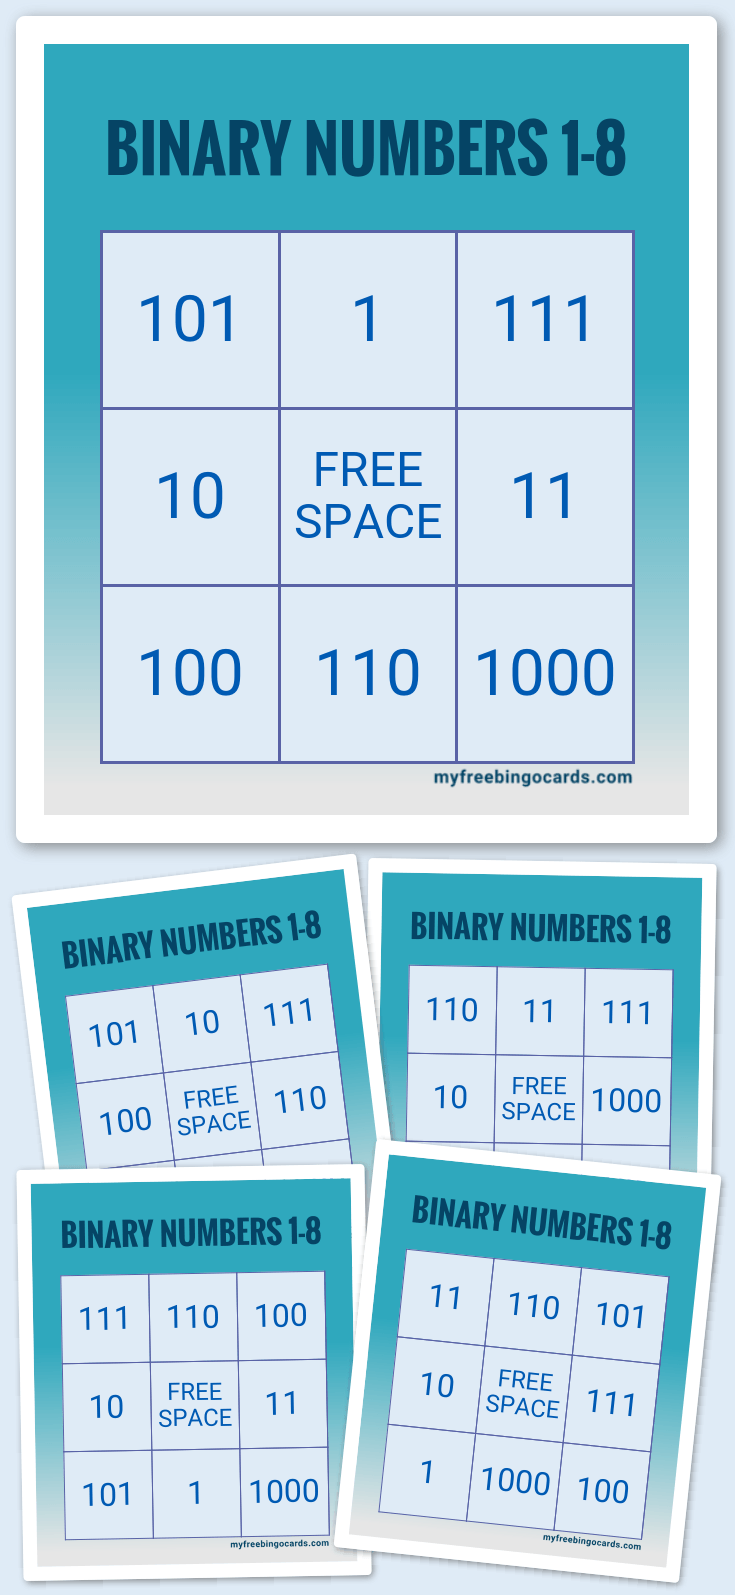 Binary Numbers 1-8 Bingo